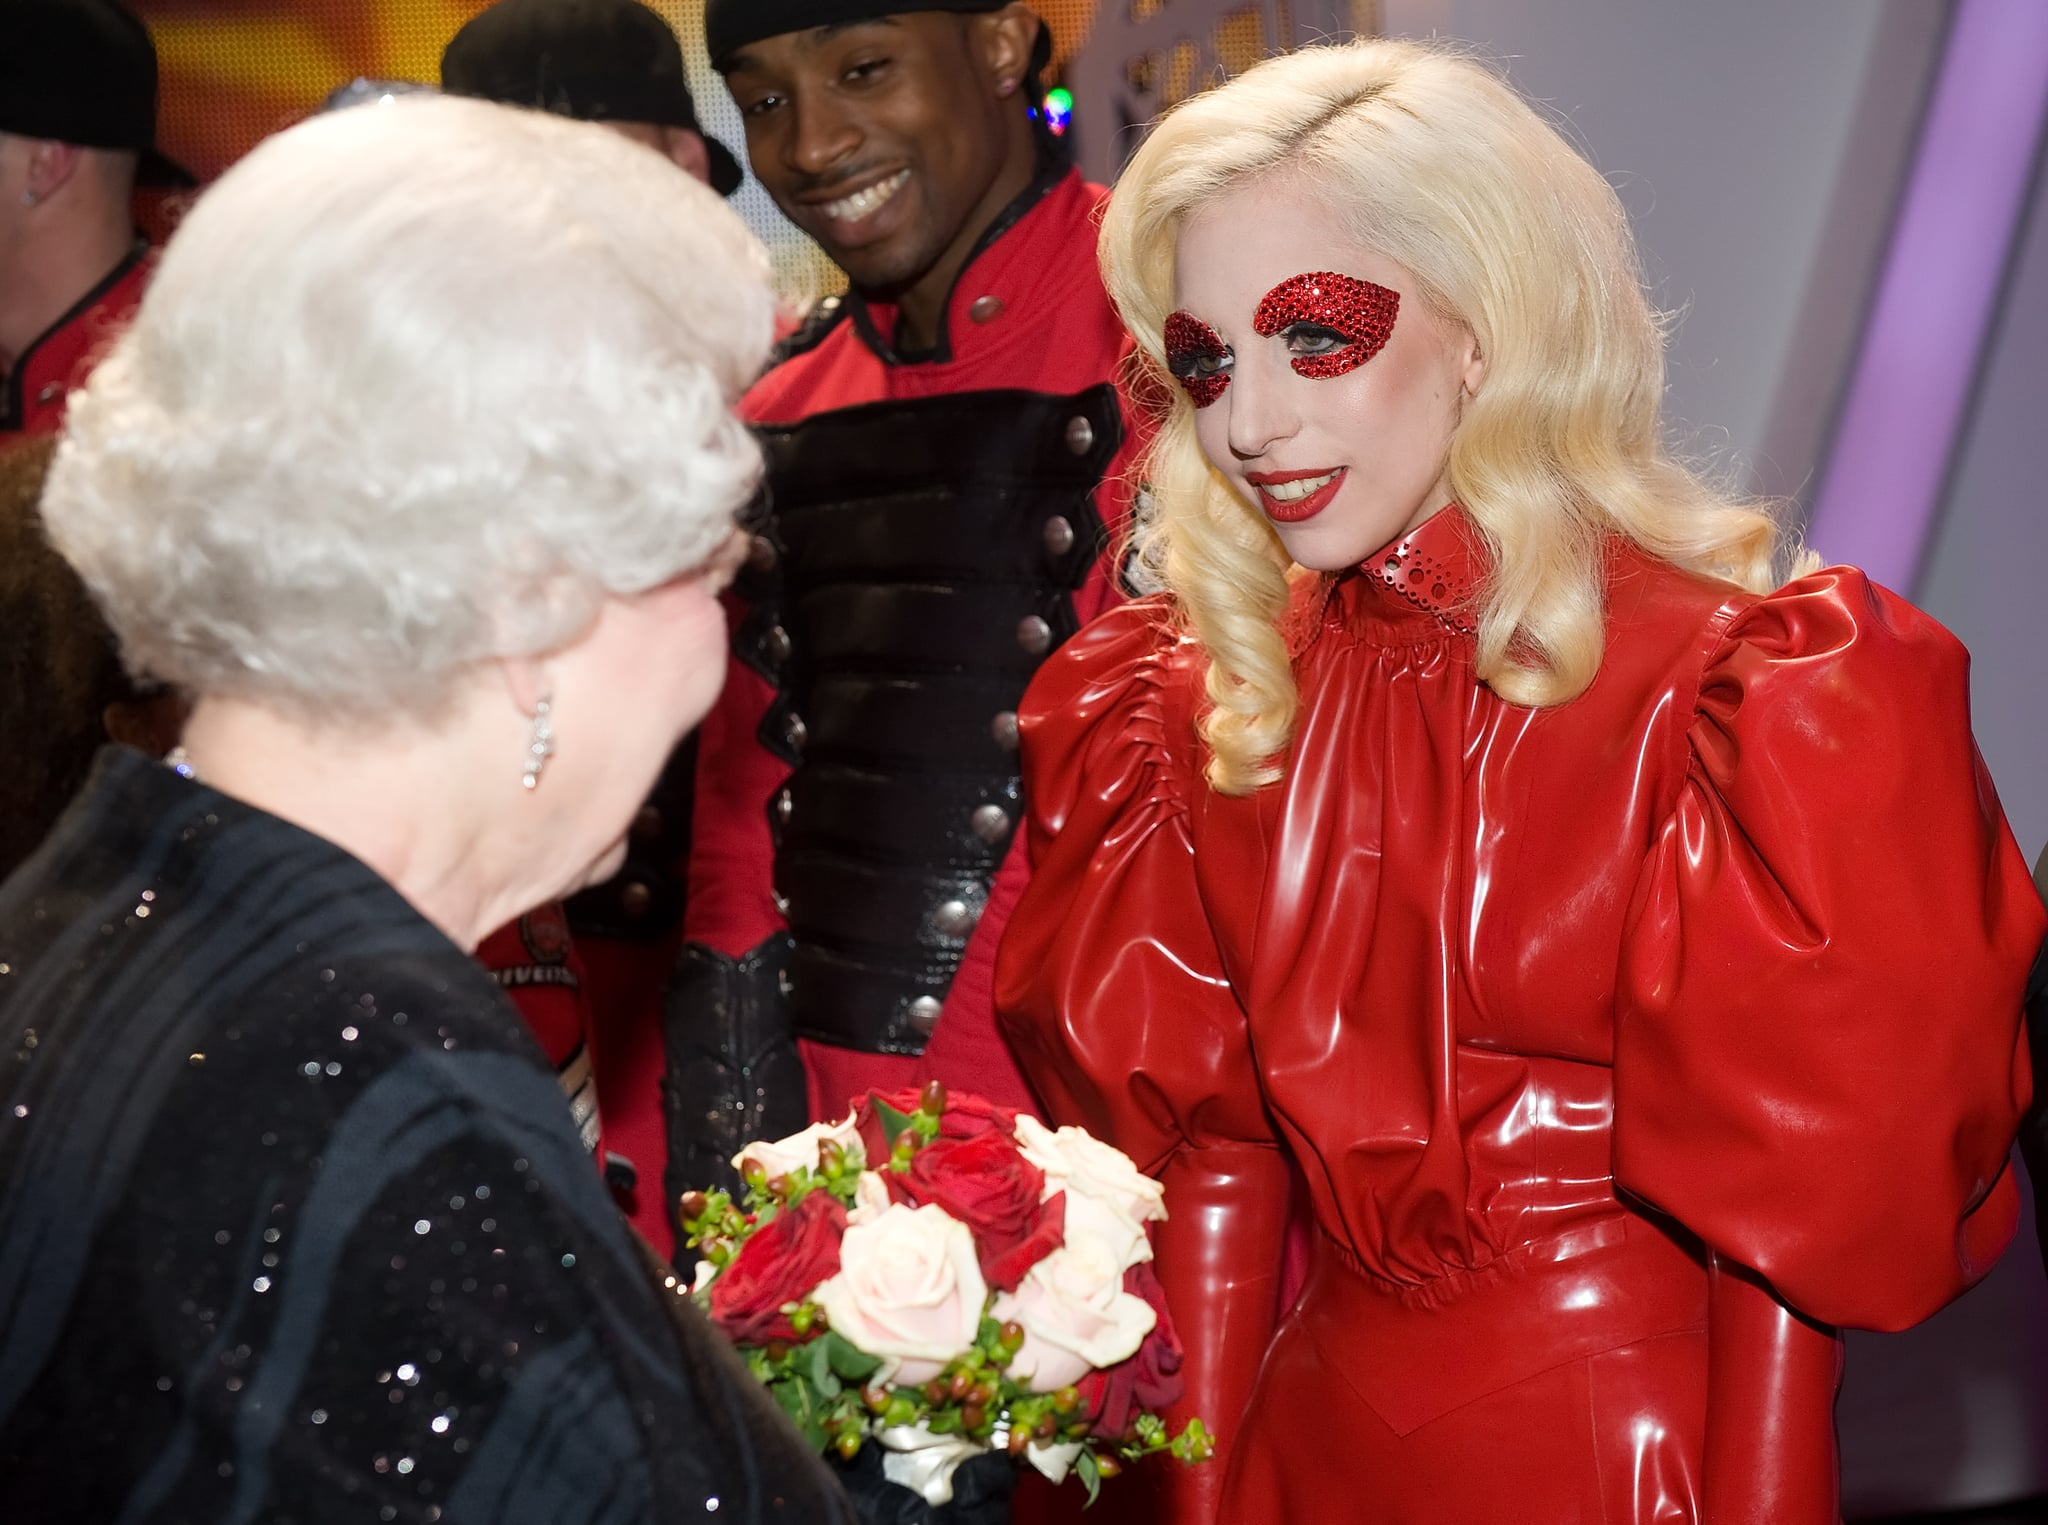 She Met the Queen of England Like This